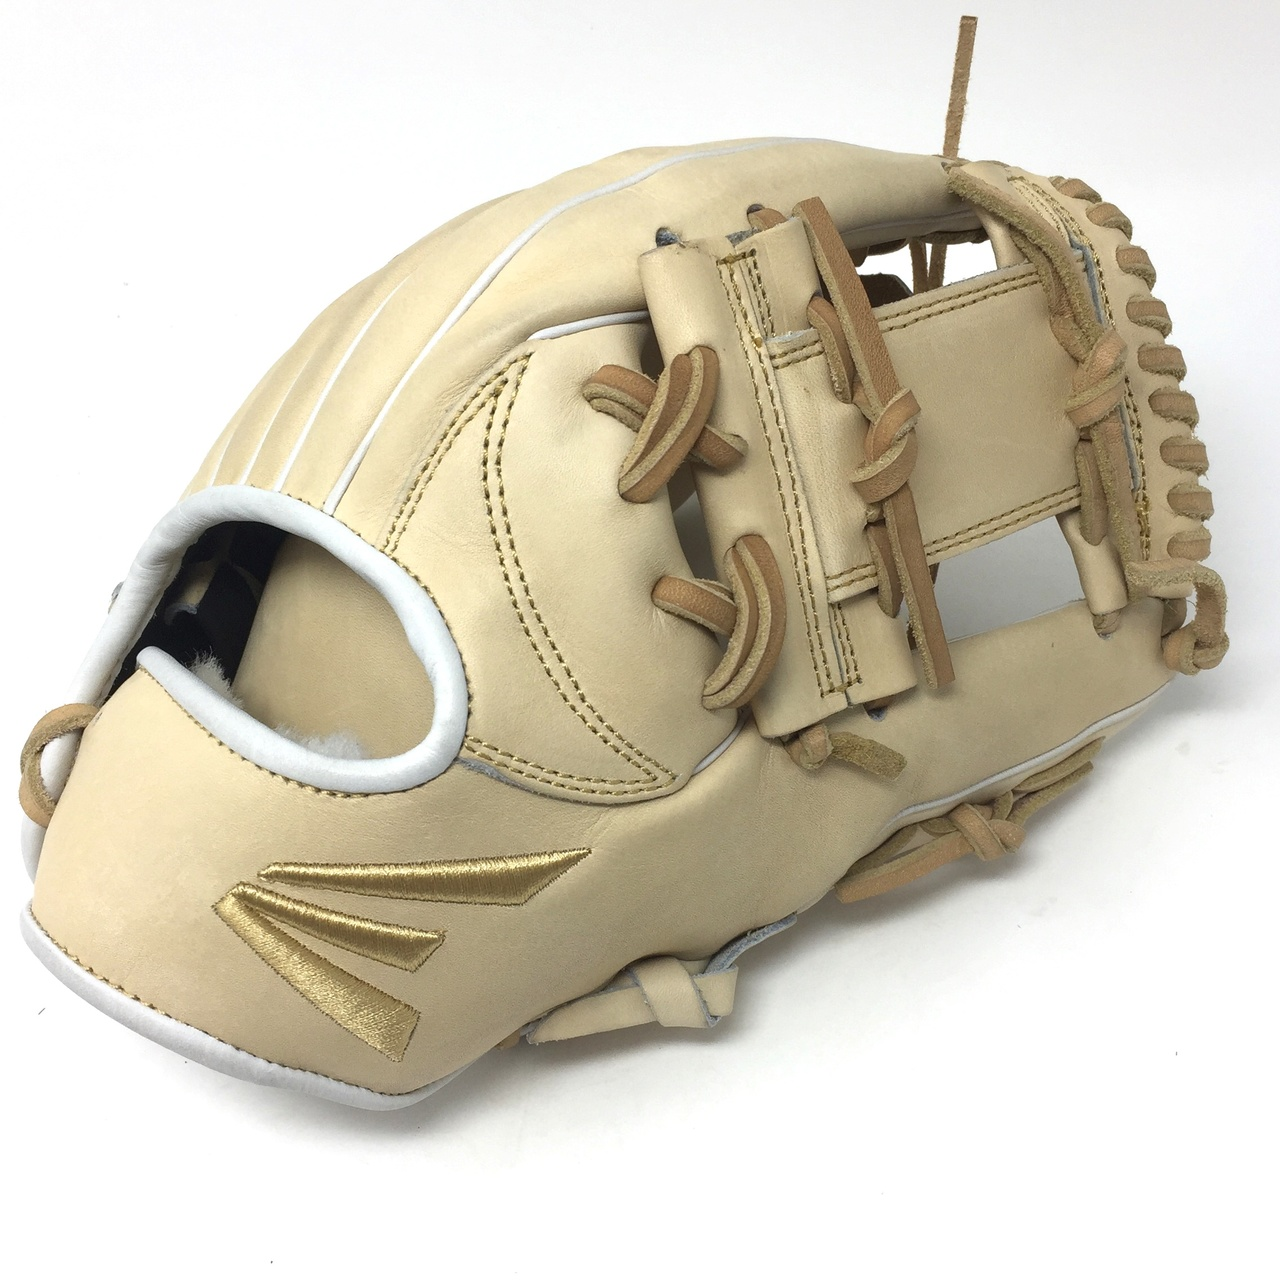 easton-small-batch-36-baseball-glove-11-5-right-hand-throw SMB36-C21-RightHandThrow Easton 628412242315 <span>Eastons Small Batch project focuses on ball glove development using only